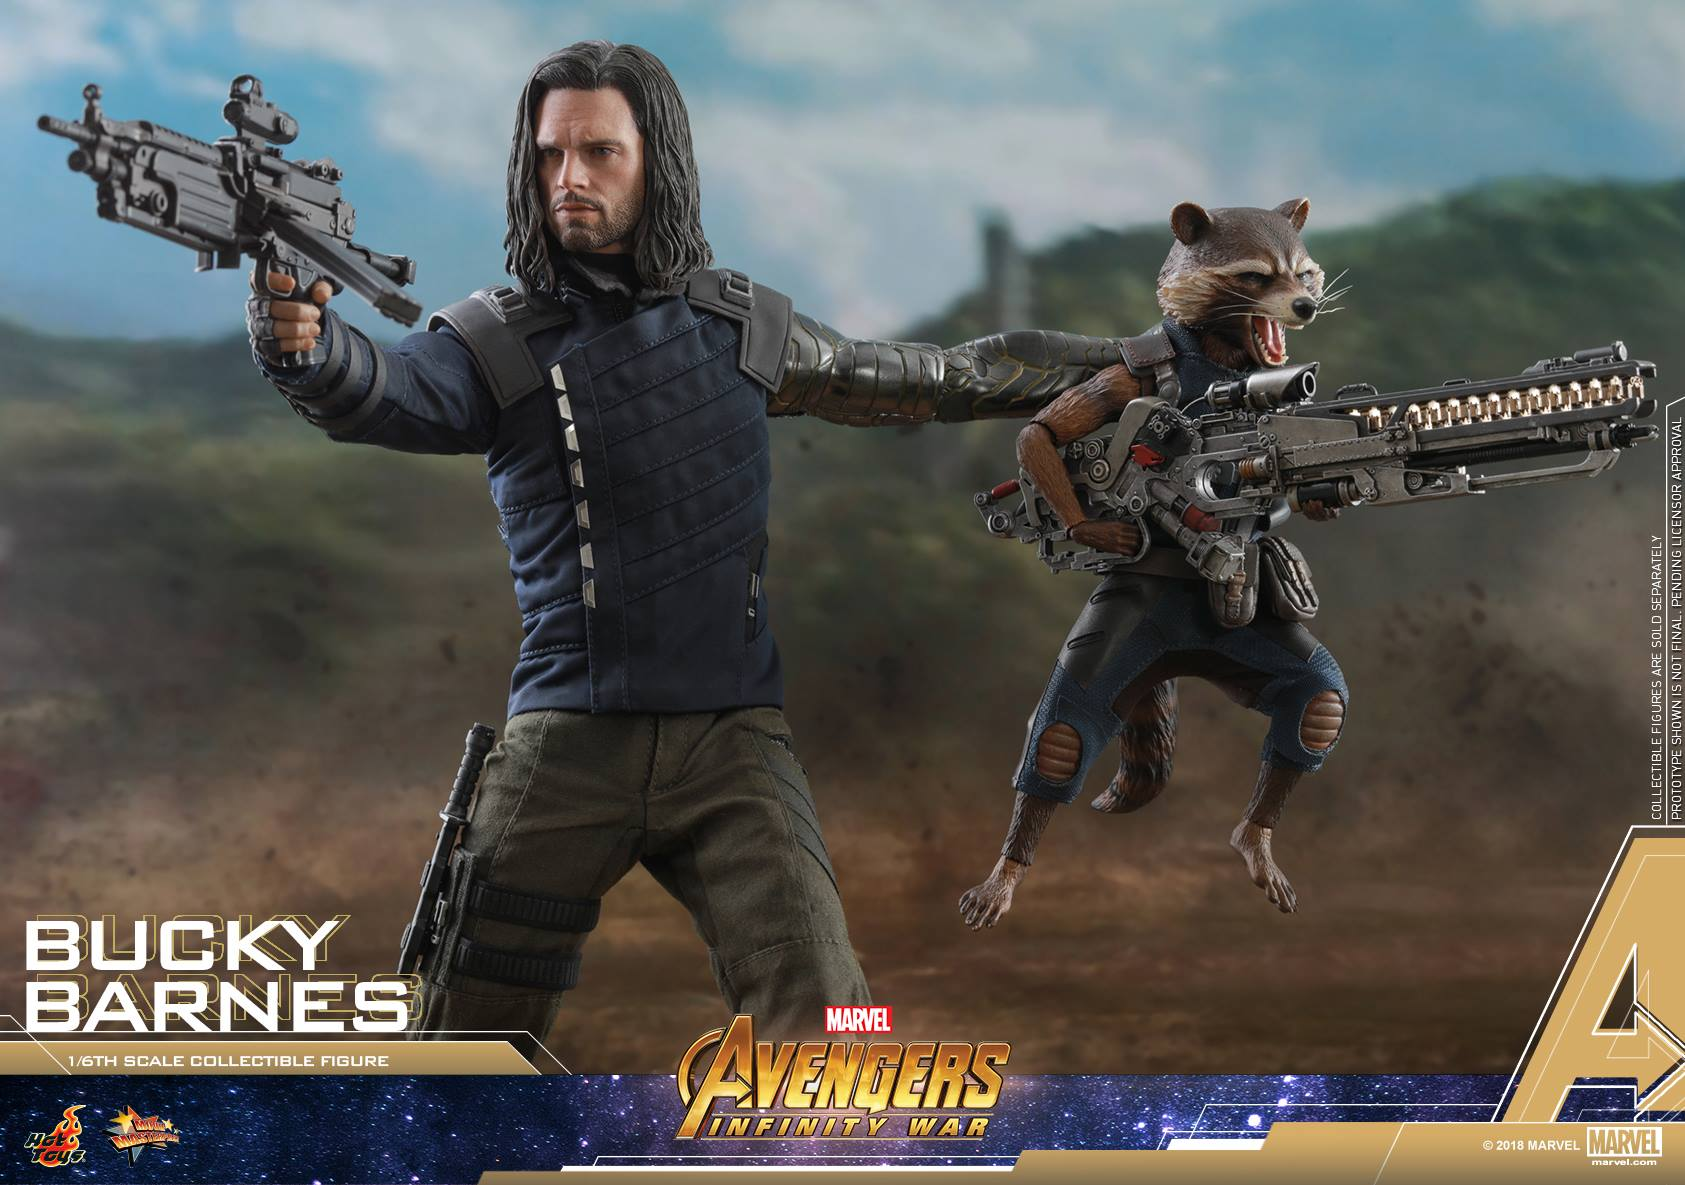 Hot Toys Shows Off Their Avengers Infinity War Bucky Barnes Action